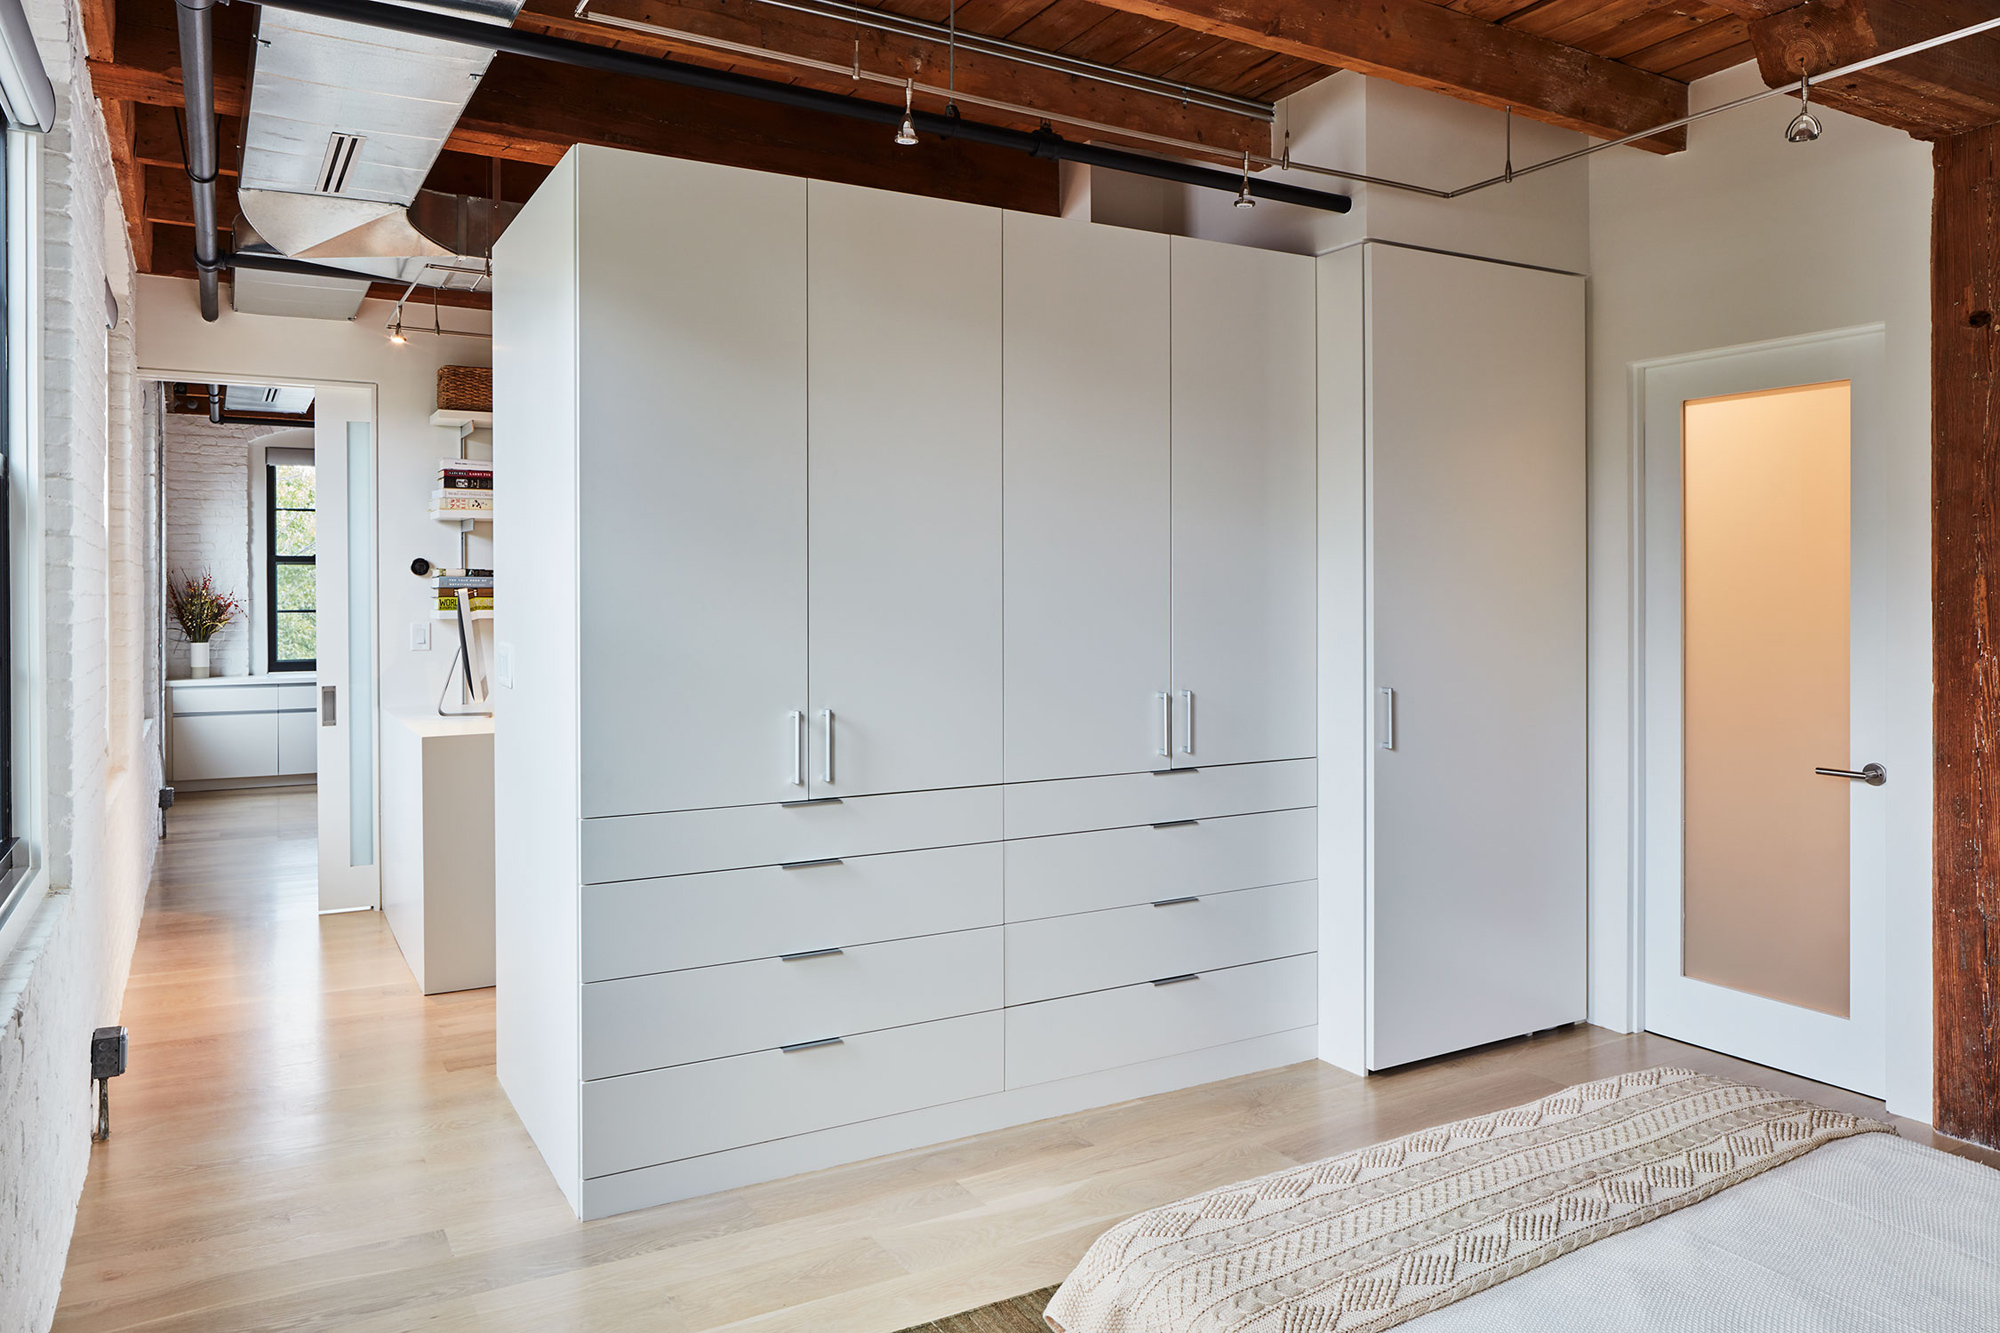 Tannery Modern Home Remodel by Shake Architecture + Construction